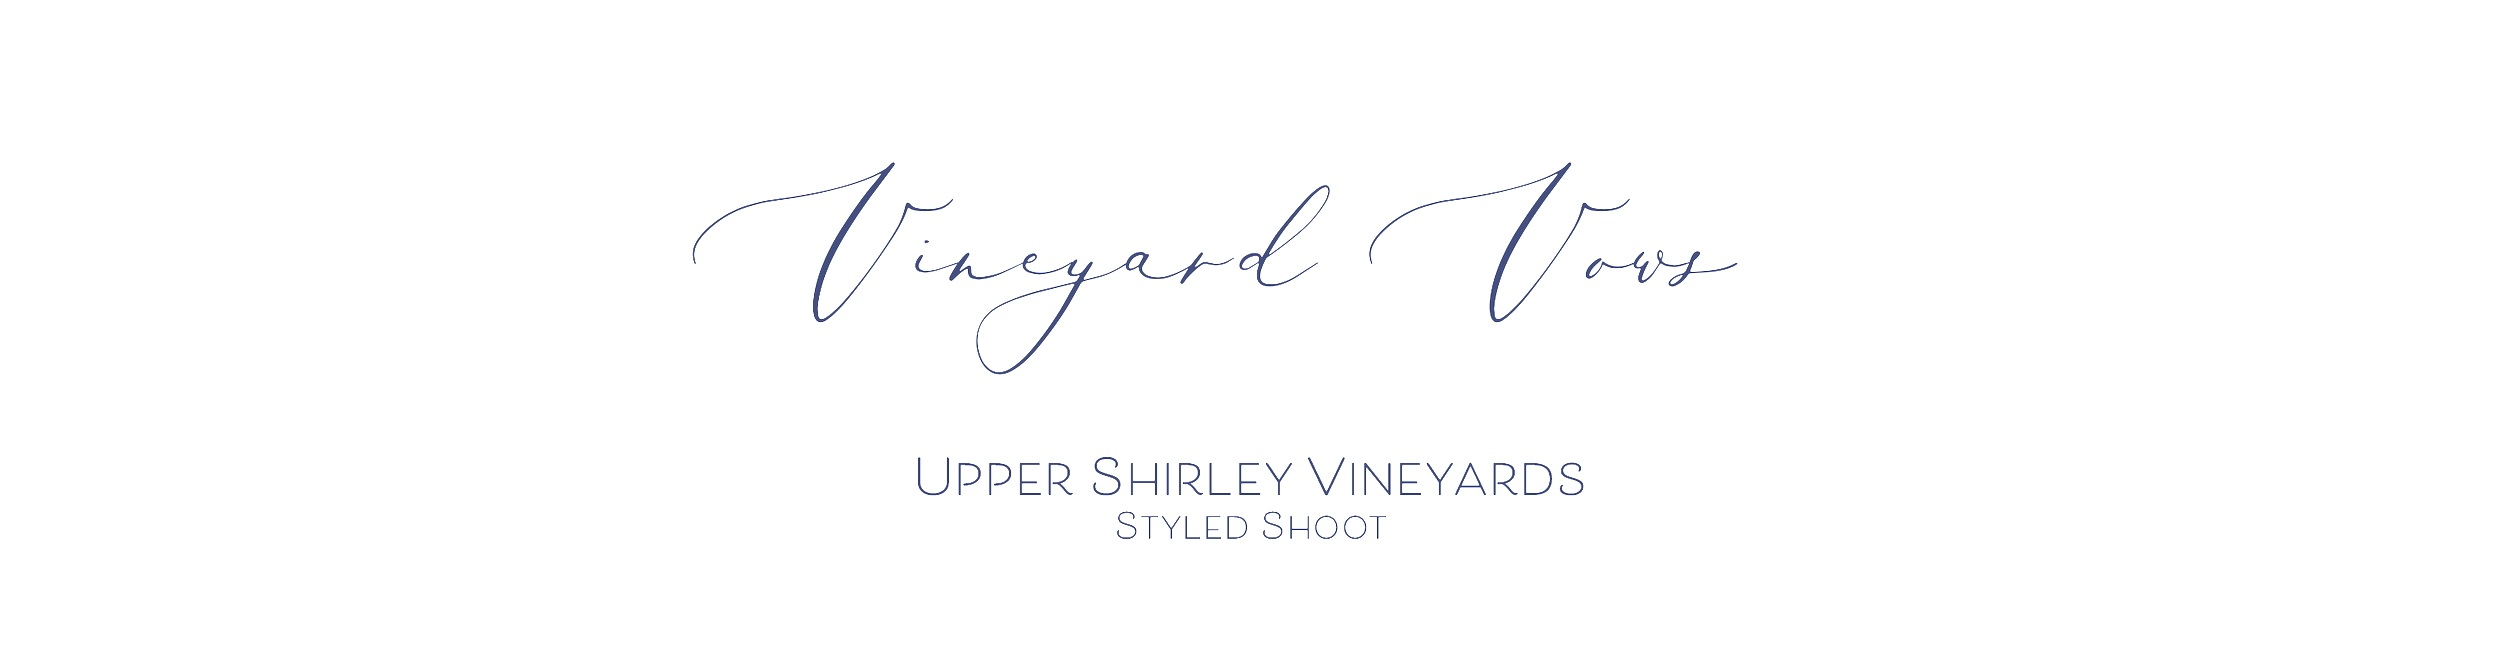 Gallery-Page-Titles-Vineyard-Vows.png